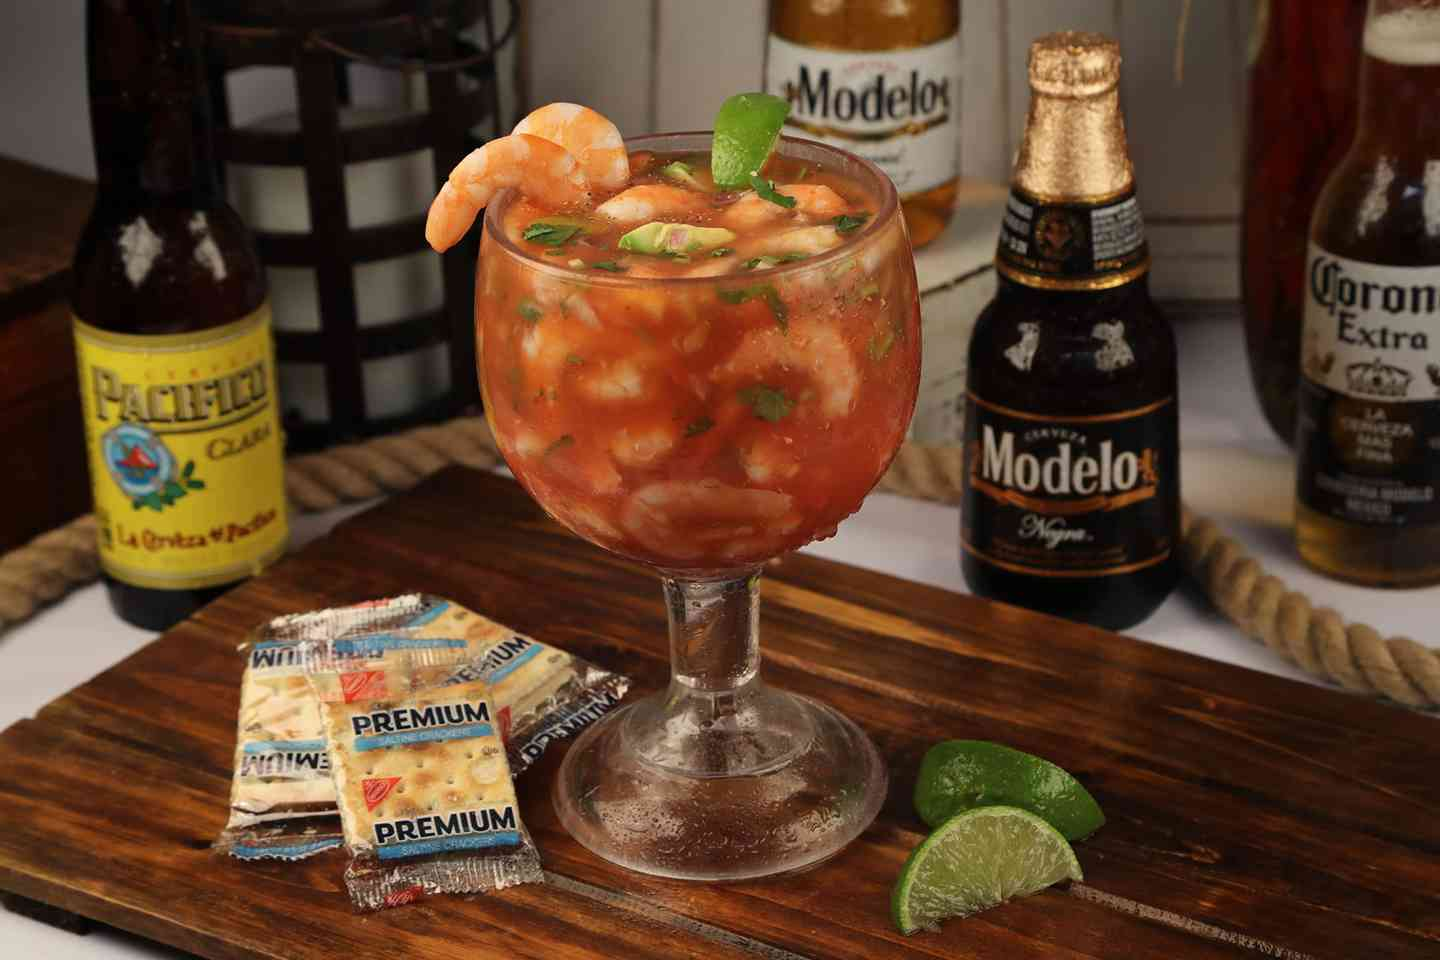 61. Shrimp Cocktail